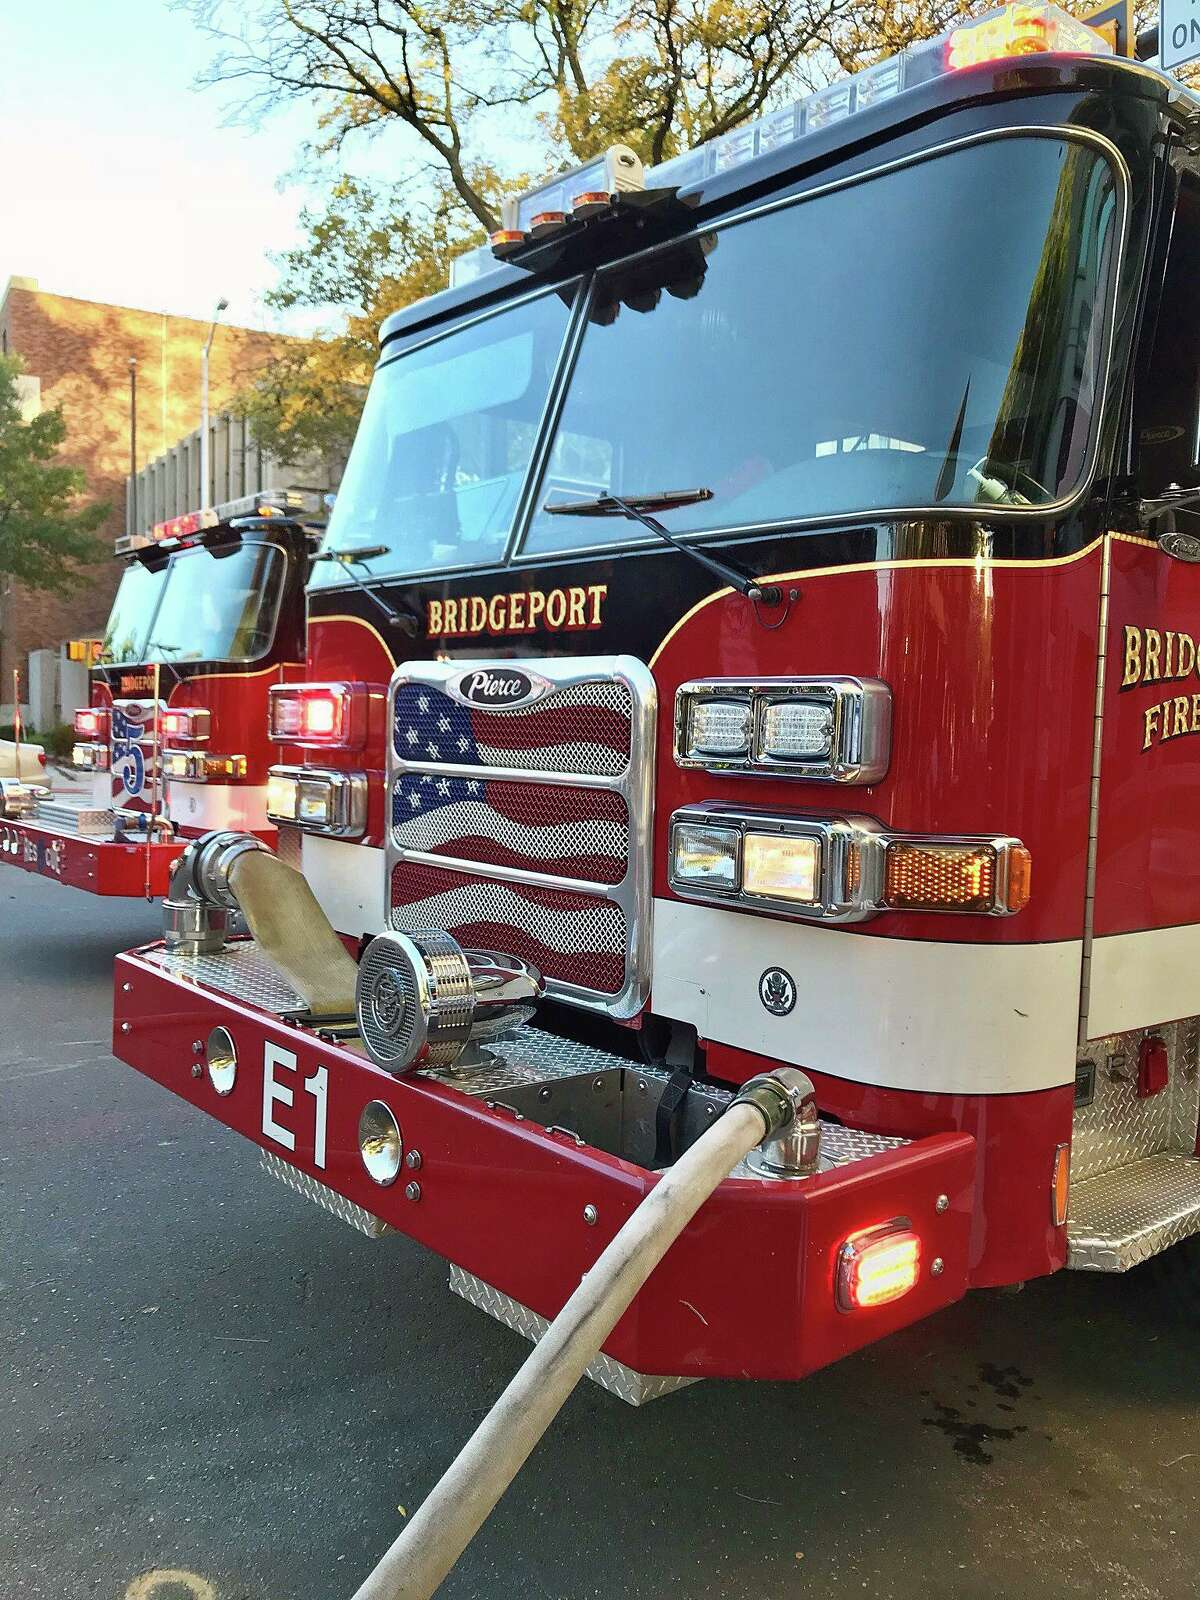 The fire department responded to a reported gas line rupture in the 2900 block of Fairfield Avenue in Bridgeport, Conn., on Thursday, June 17, 2021.